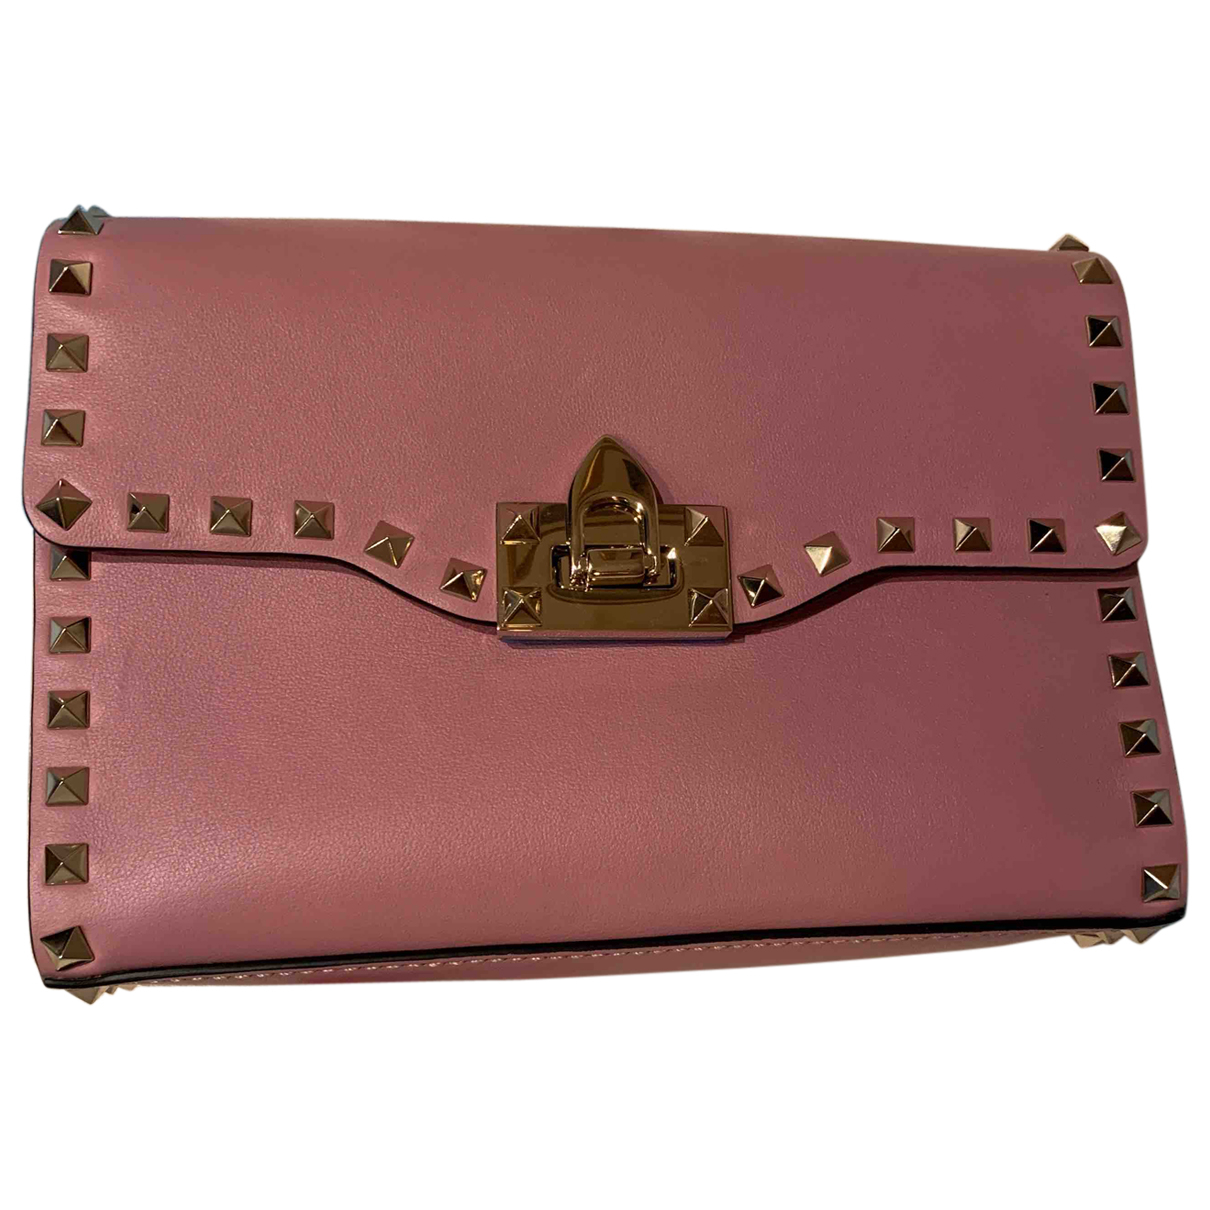 Valentino Garavani Rockstud Pink Leather handbag for Women \N